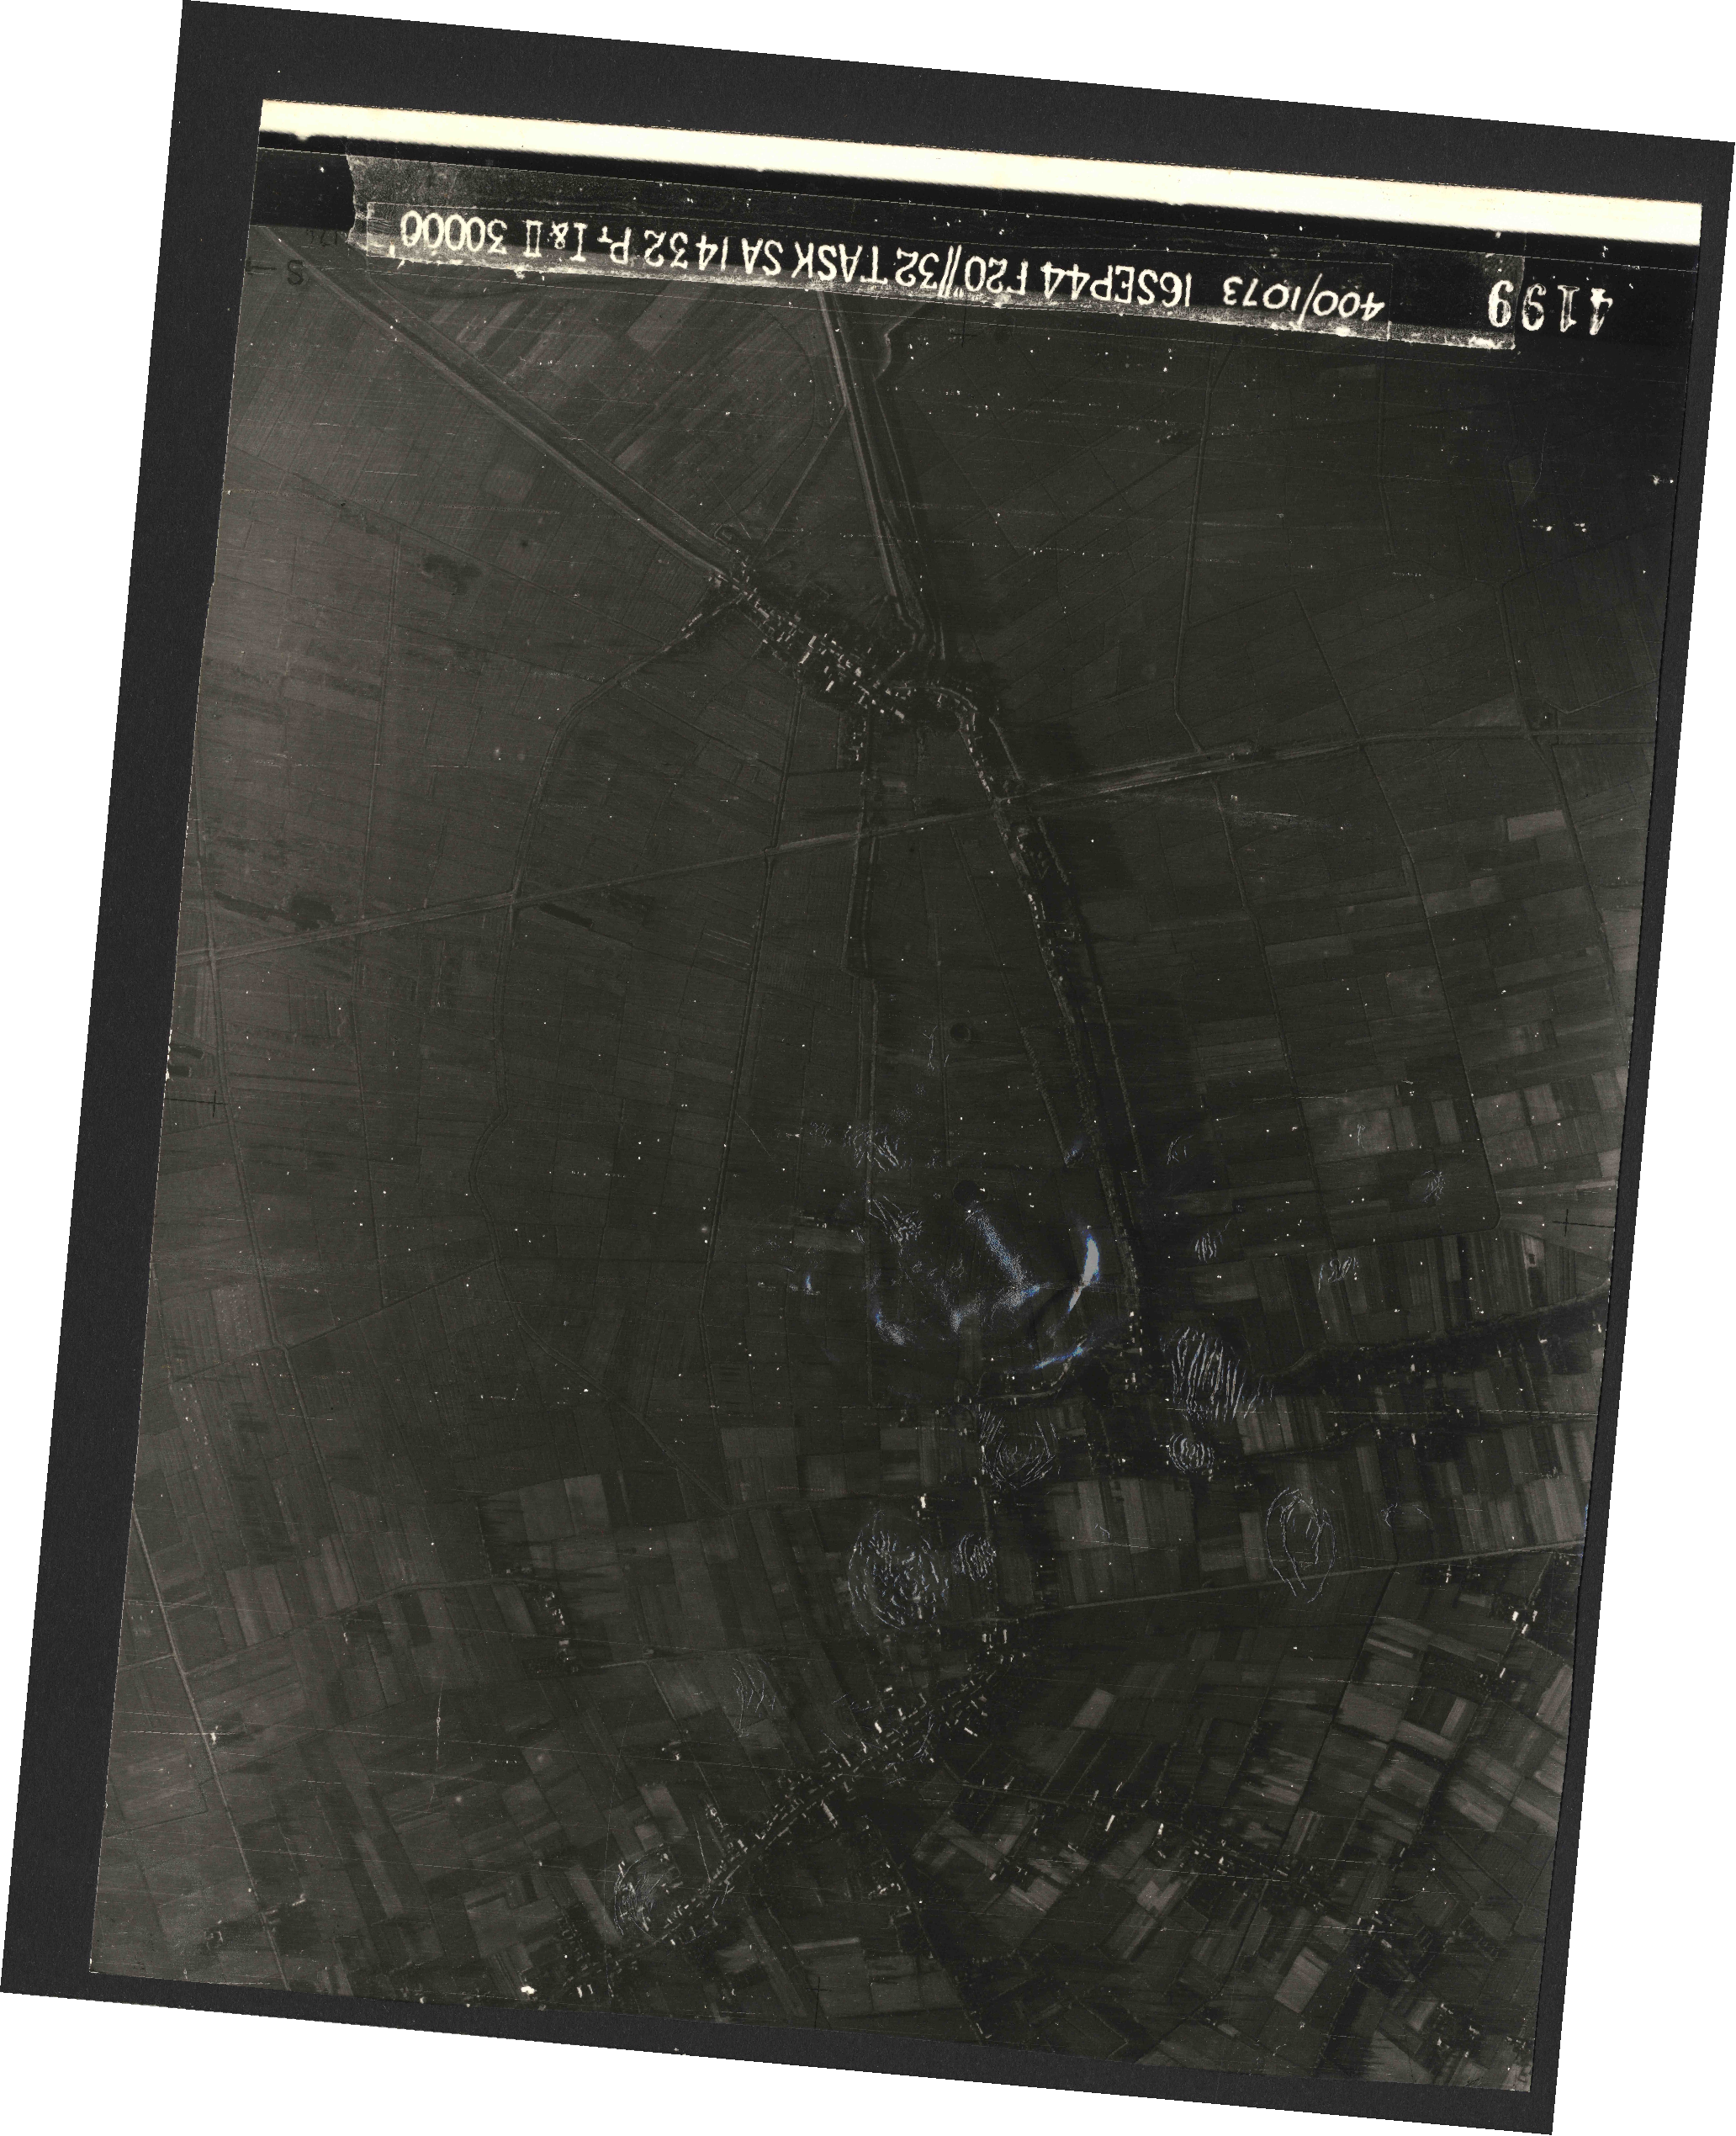 Collection RAF aerial photos 1940-1945 - flight 013, run 08, photo 4199